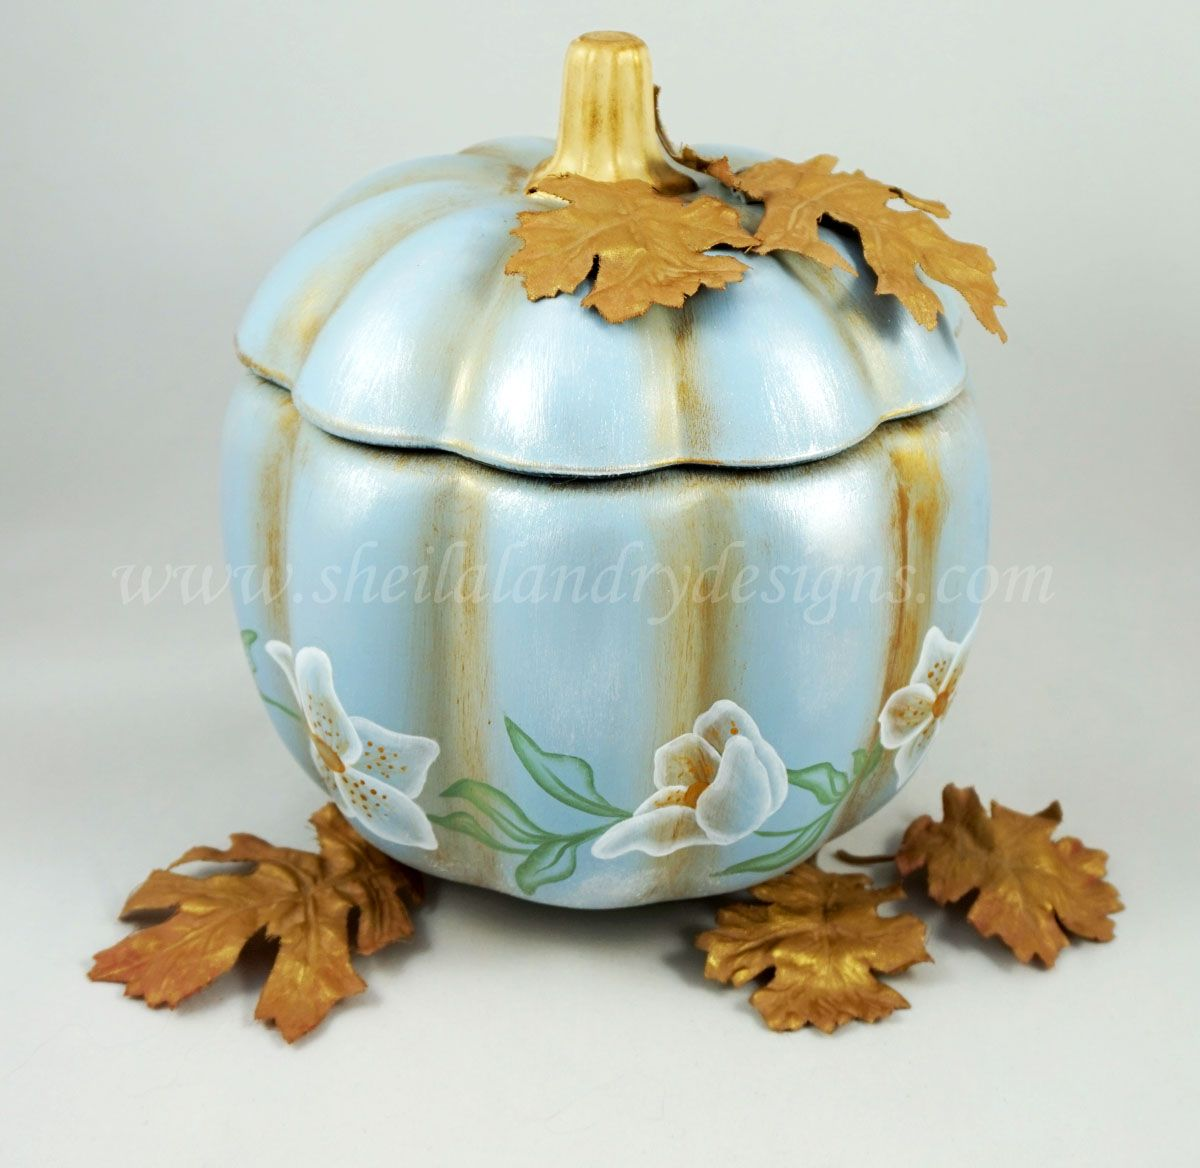 #1797 My Winter Pumpkin  Today's blog shows my Winter Pumpkin all finished using some beautiful DecoArt Products: http://www.sheilalandrydesigns.com/blog/post/3806188